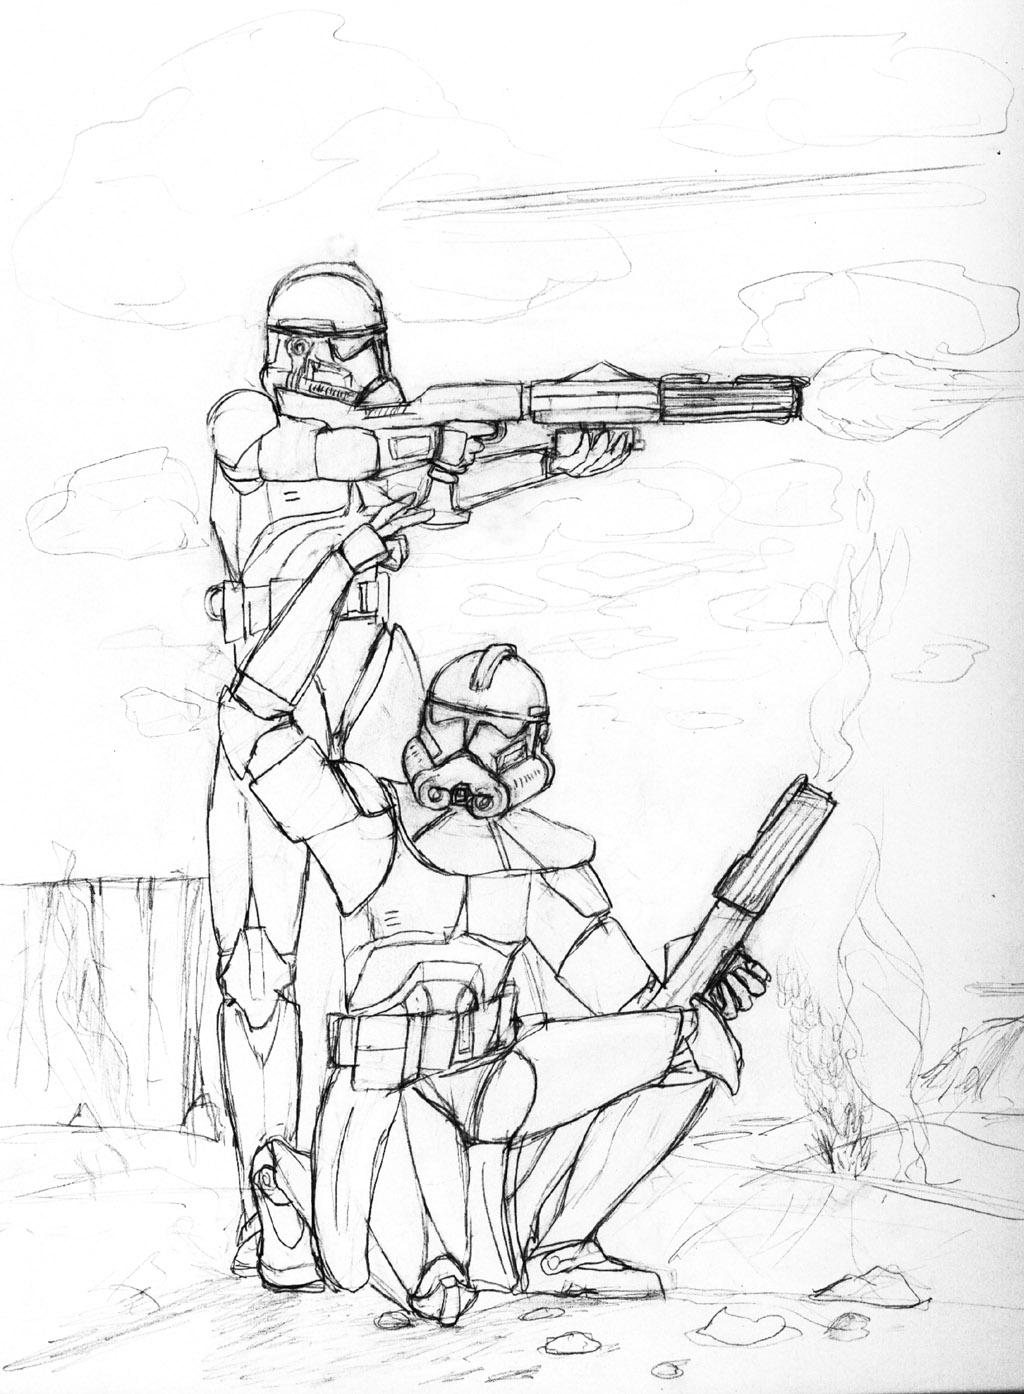 Clone troopers by ahunterinsilence on DeviantArt